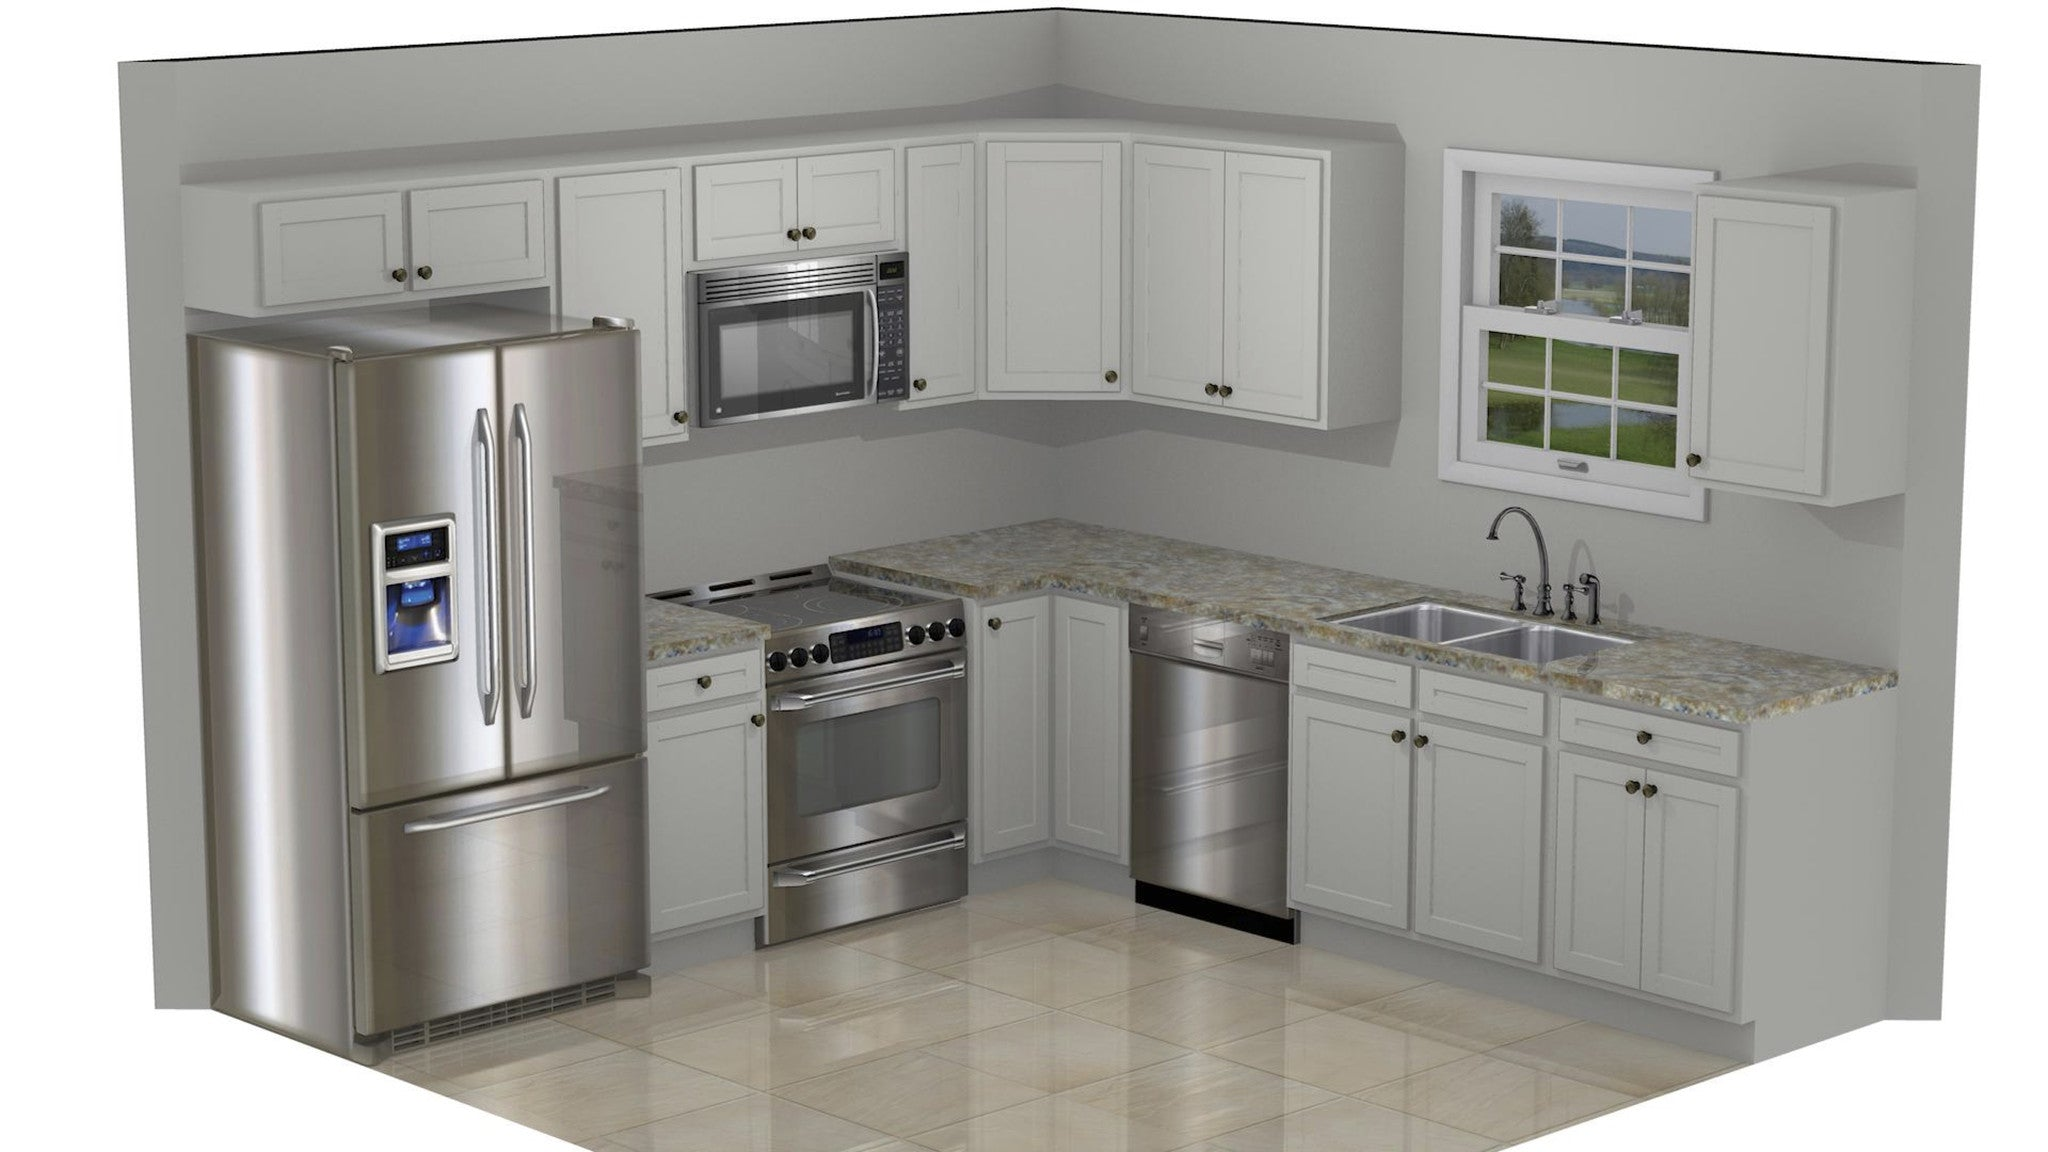 What is a 10x10 kitchen – Wholesale Cabinet Supply